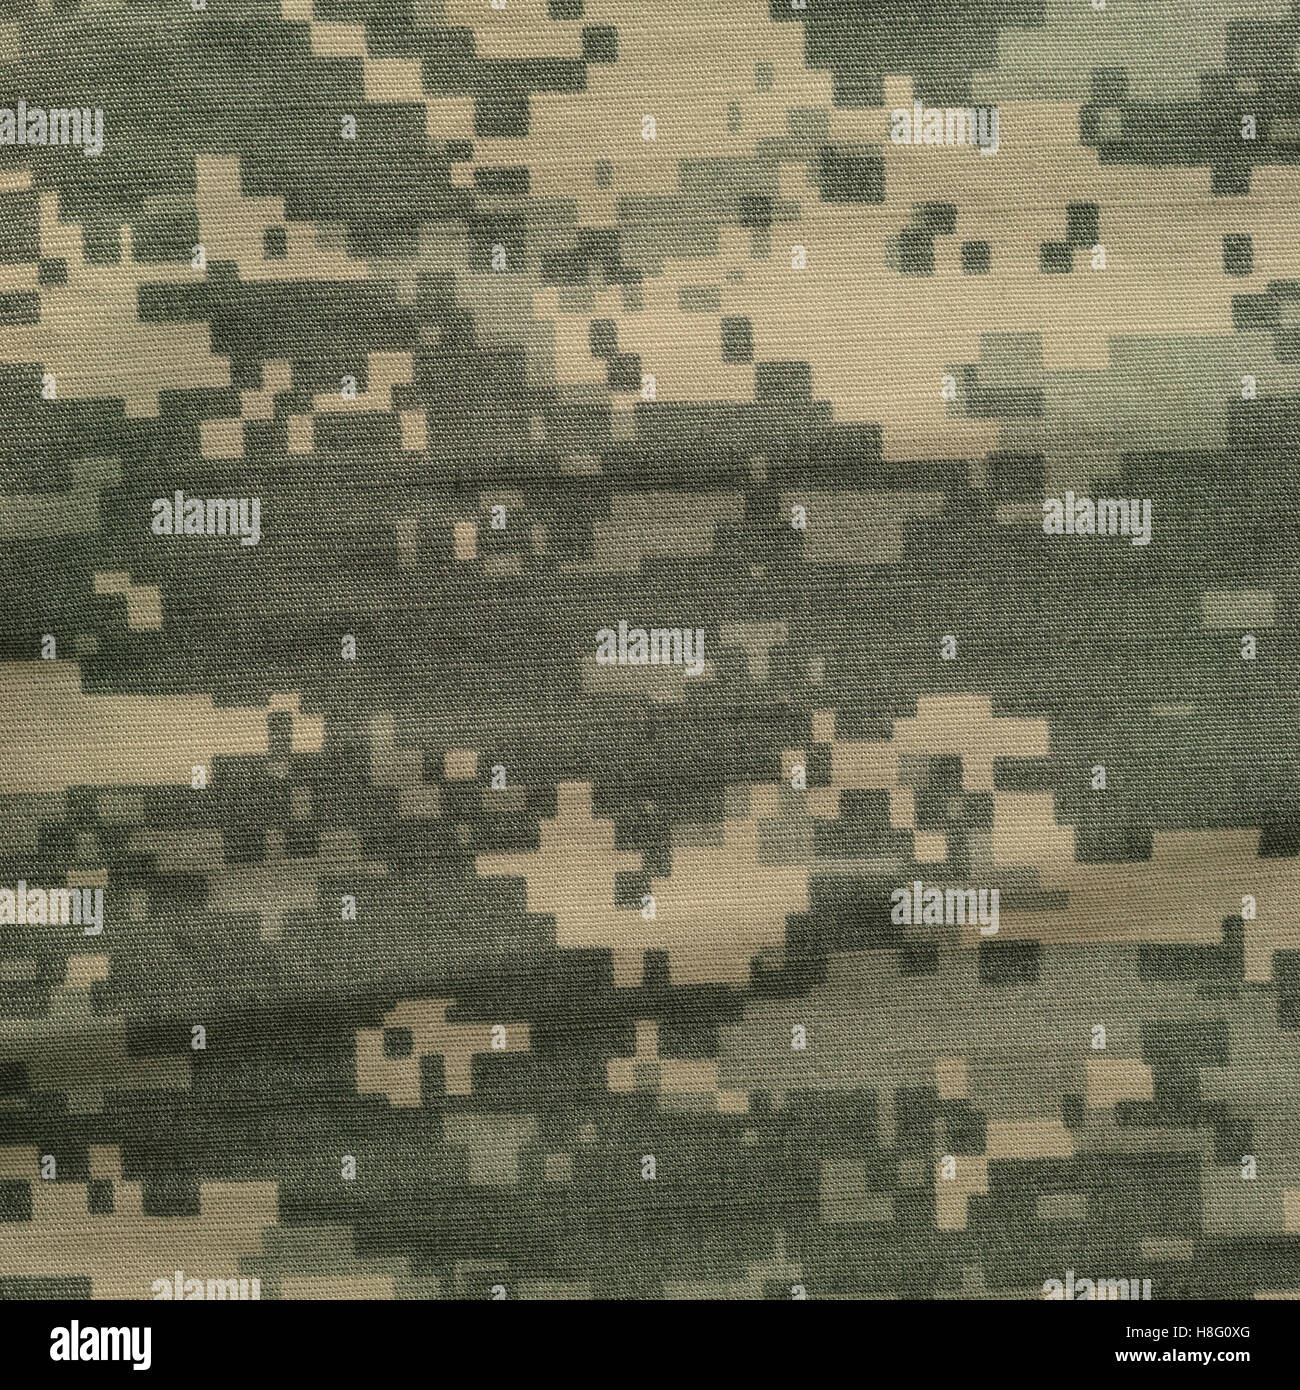 Universal camouflage pattern, army combat uniform digital camo, USA military ACU macro closeup, detailed large rip - Stock Image